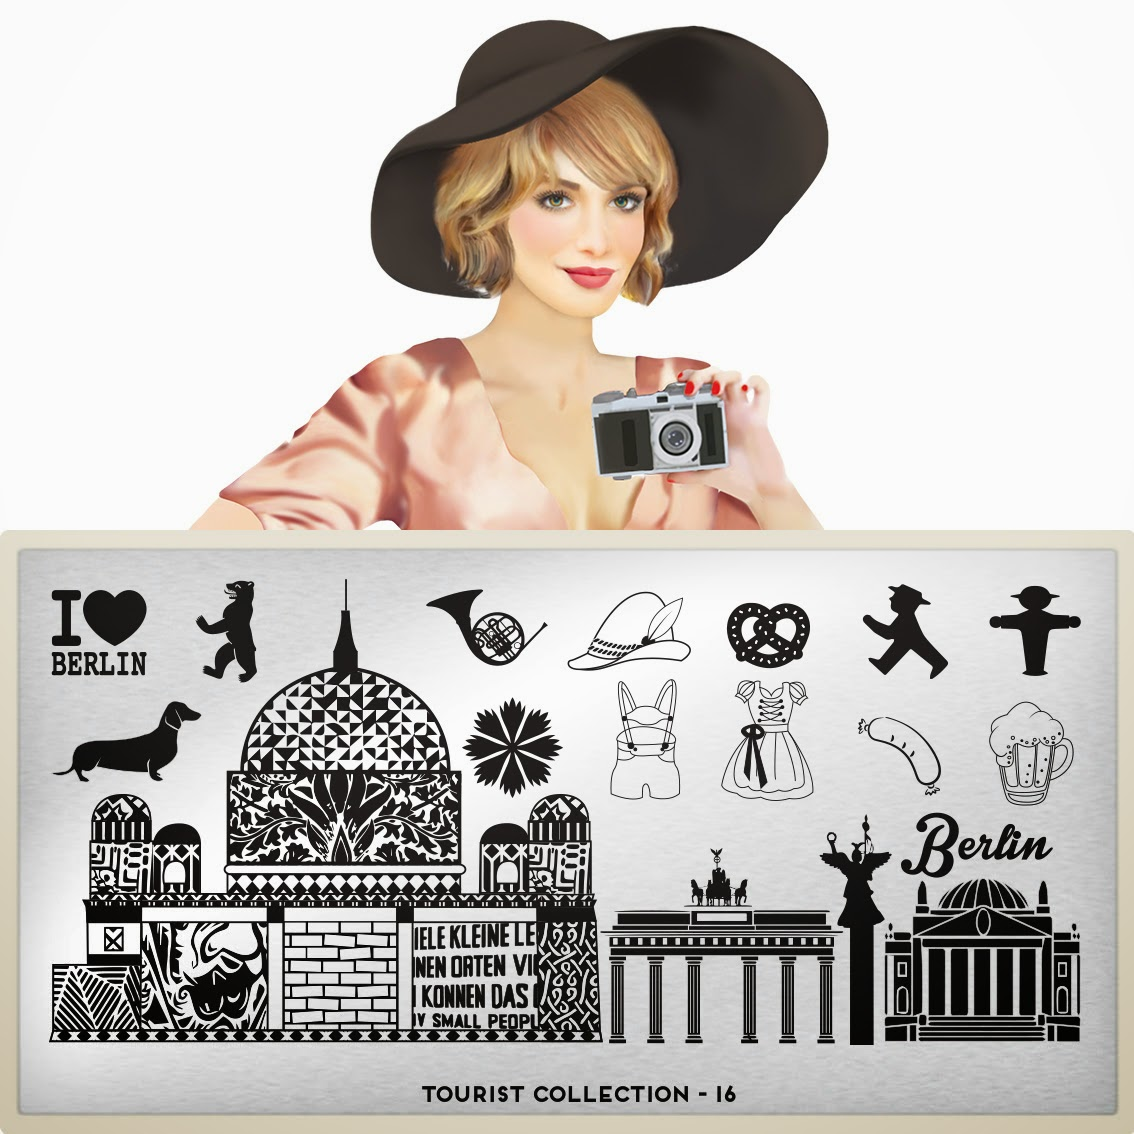 Lacquer Lockdown - MoYou London, MoYou London Tourist Collection, stamping, nail art, new stamping plates 2014, new image plates 2014, new nail art plates 2014, cici and sisi, hawaii themed nail art, vacation nail art, vacation nails, cute naiil art ideas, diy nail art,  germany themed nail art, germany themed stamping plates